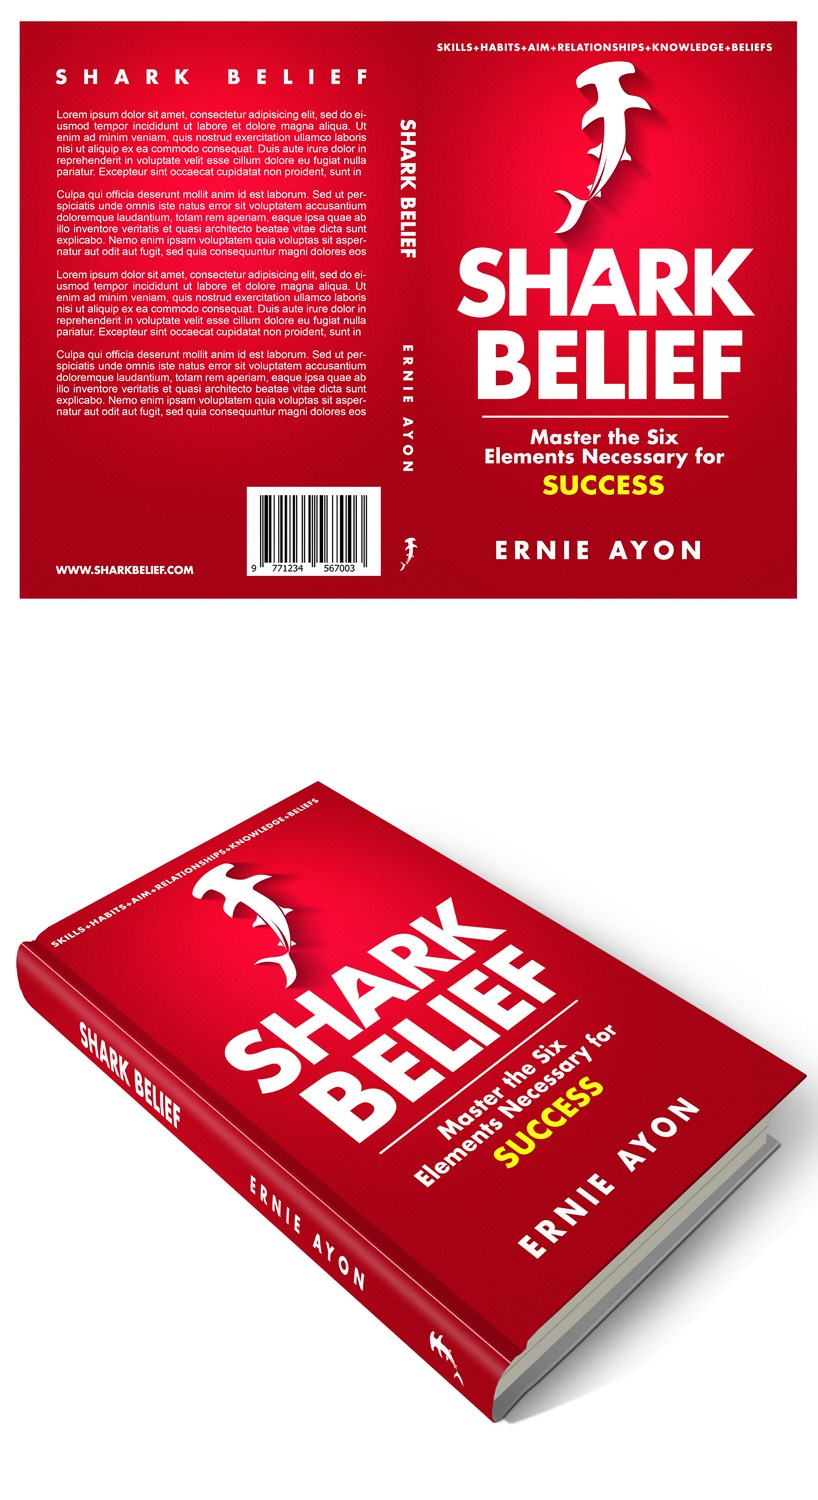 Business Book Covers ~ Modern colorful business book cover design for a company